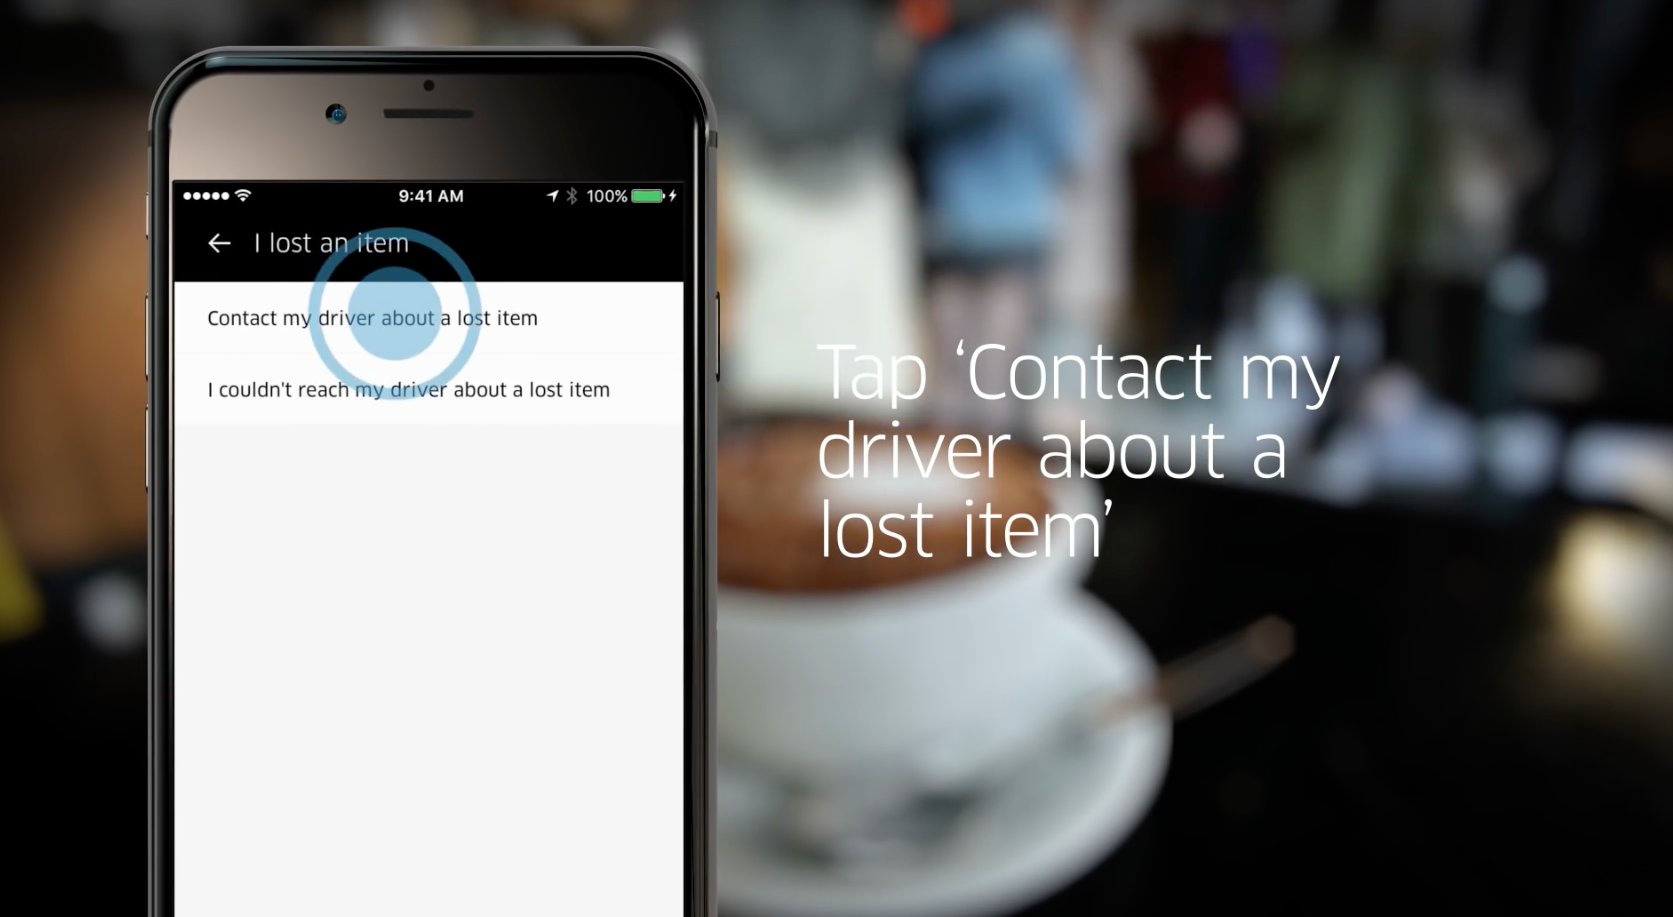 How to get lost item in uber